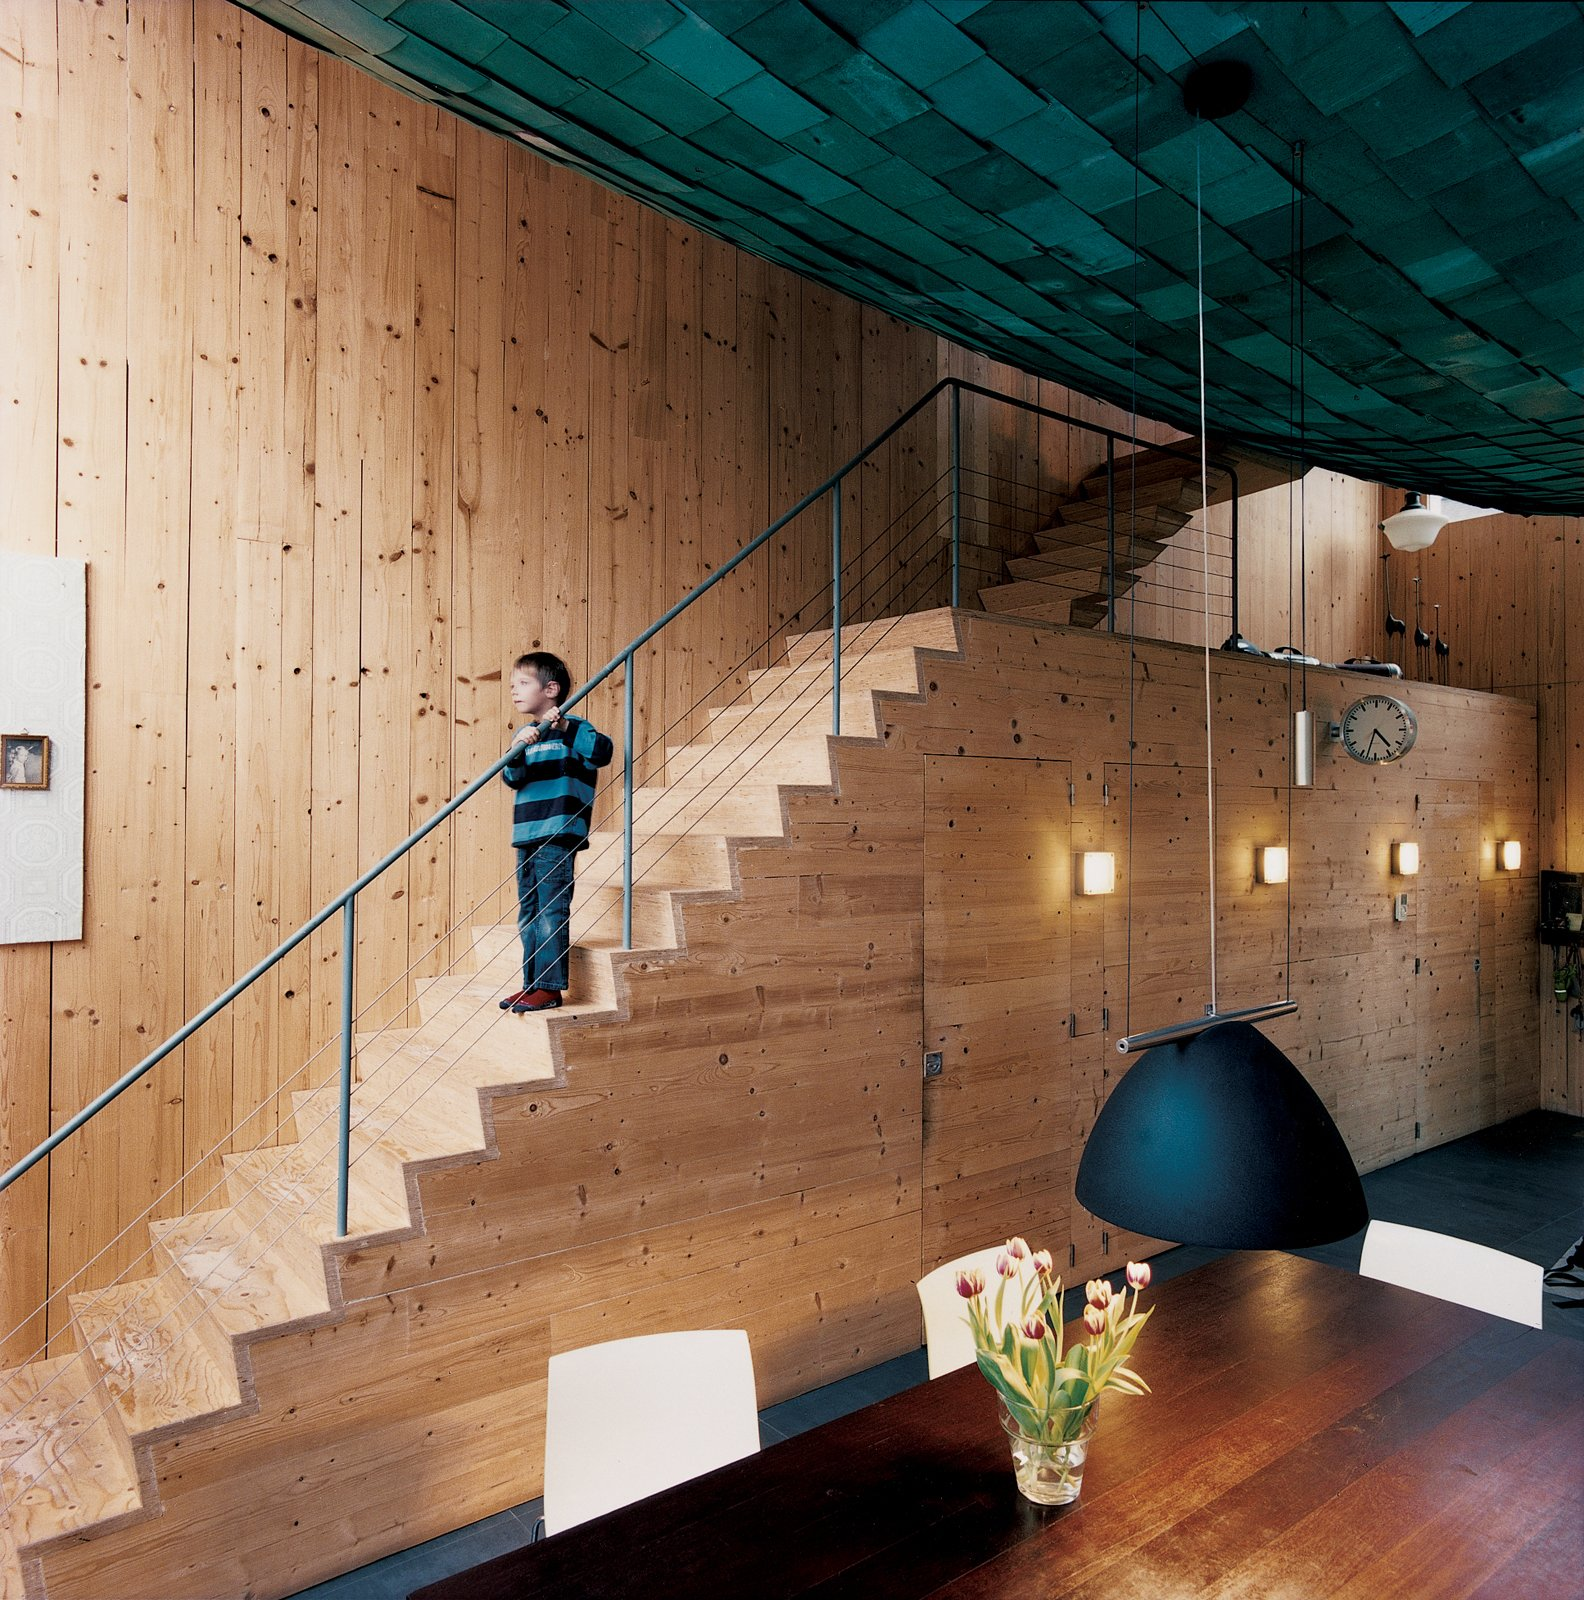 Staircase, Metal Railing, and Wood Tread Ceramic floors with radiant heating and cozy wall sconces top off the distinctive appearance, smell, and sound.  Photo 1 of 10 in A Suspended Living Room Floats Like an Air Ship